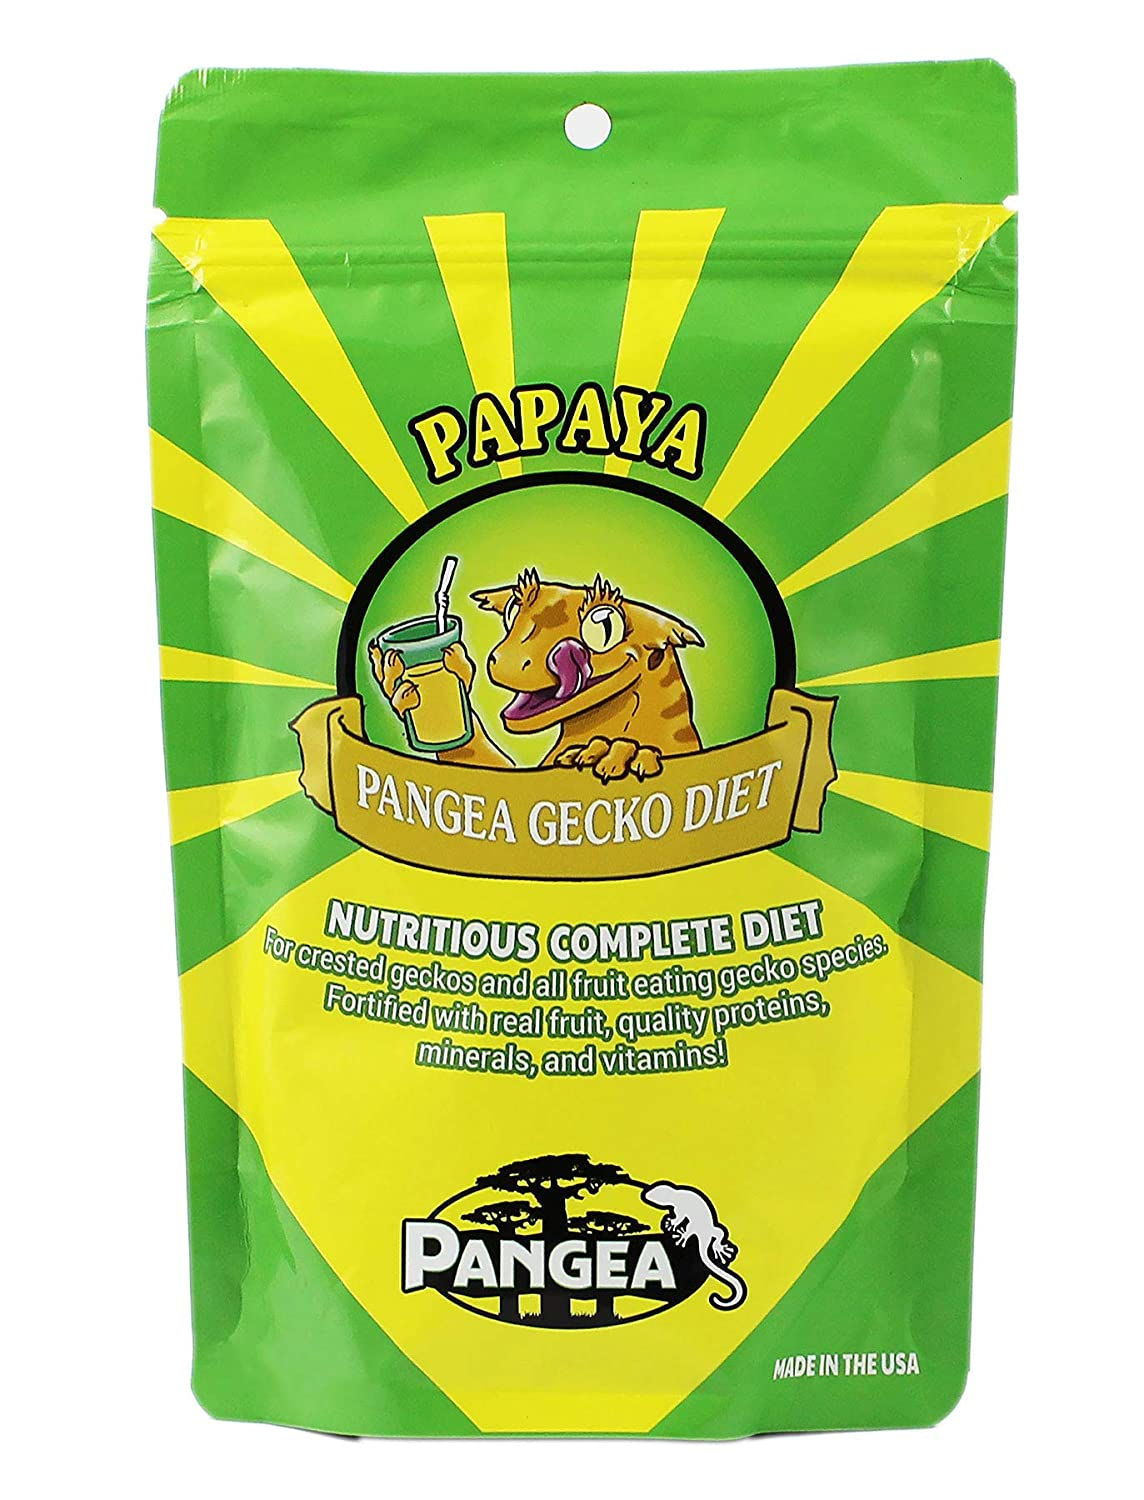 Banana/Papaya Pangea Fruit Mix Complete Crested Gecko Food 1 lb